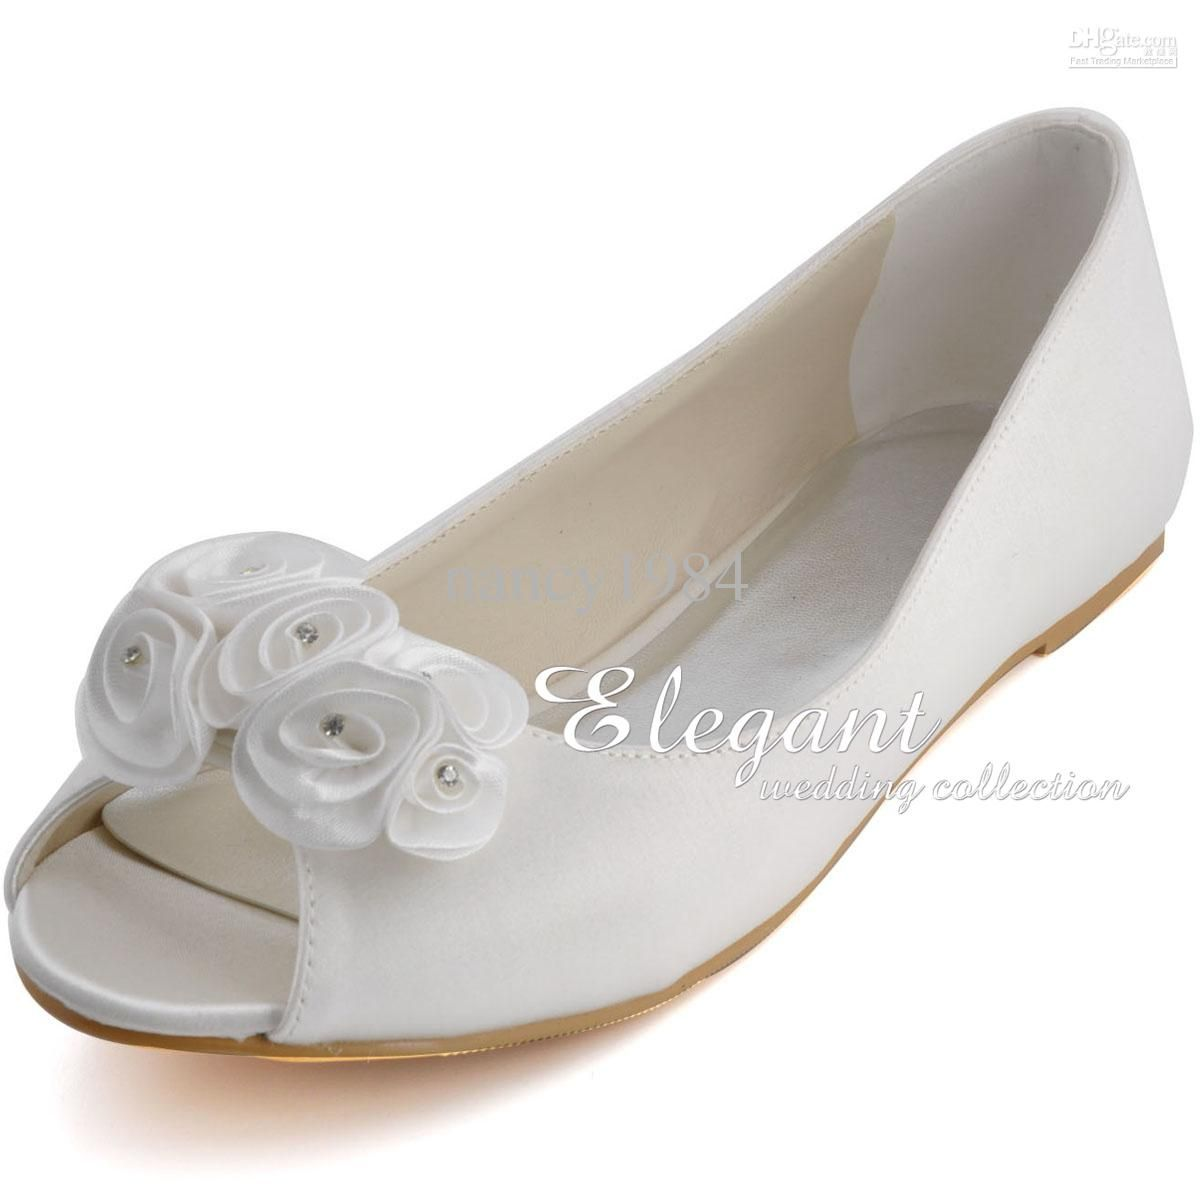 Shoes. Shoes Bling Wedding ... 85e8abbba34d